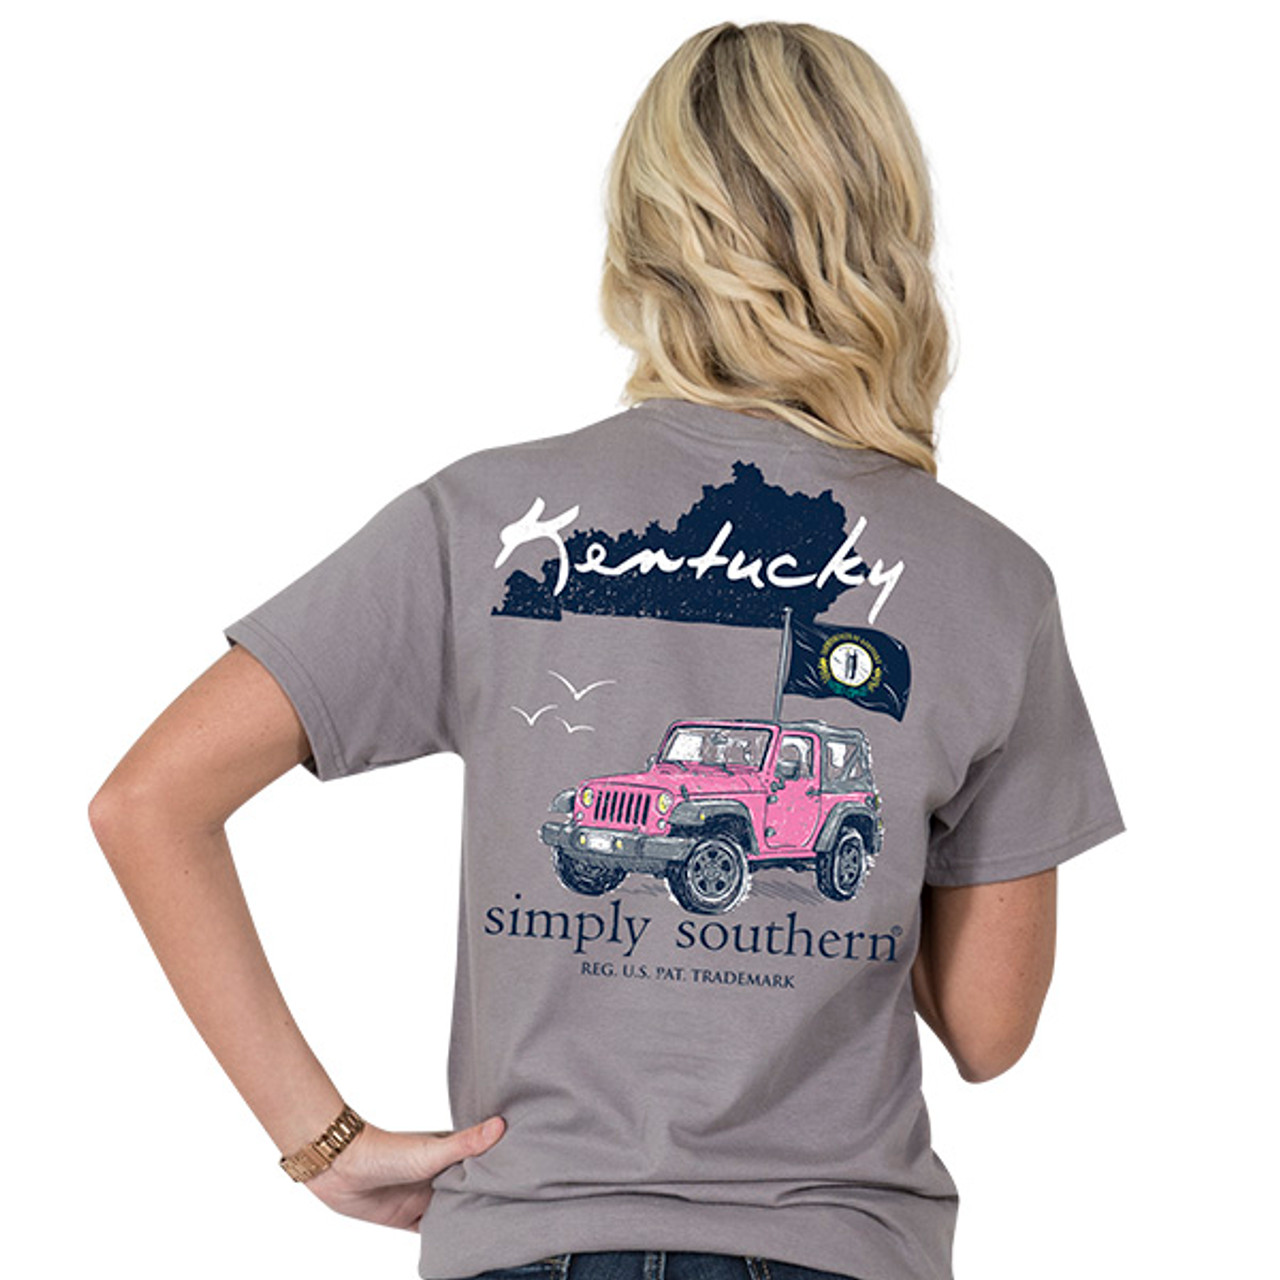 2bf82697d Simply Southern SS Tee - Kentucky - Cordial Lee